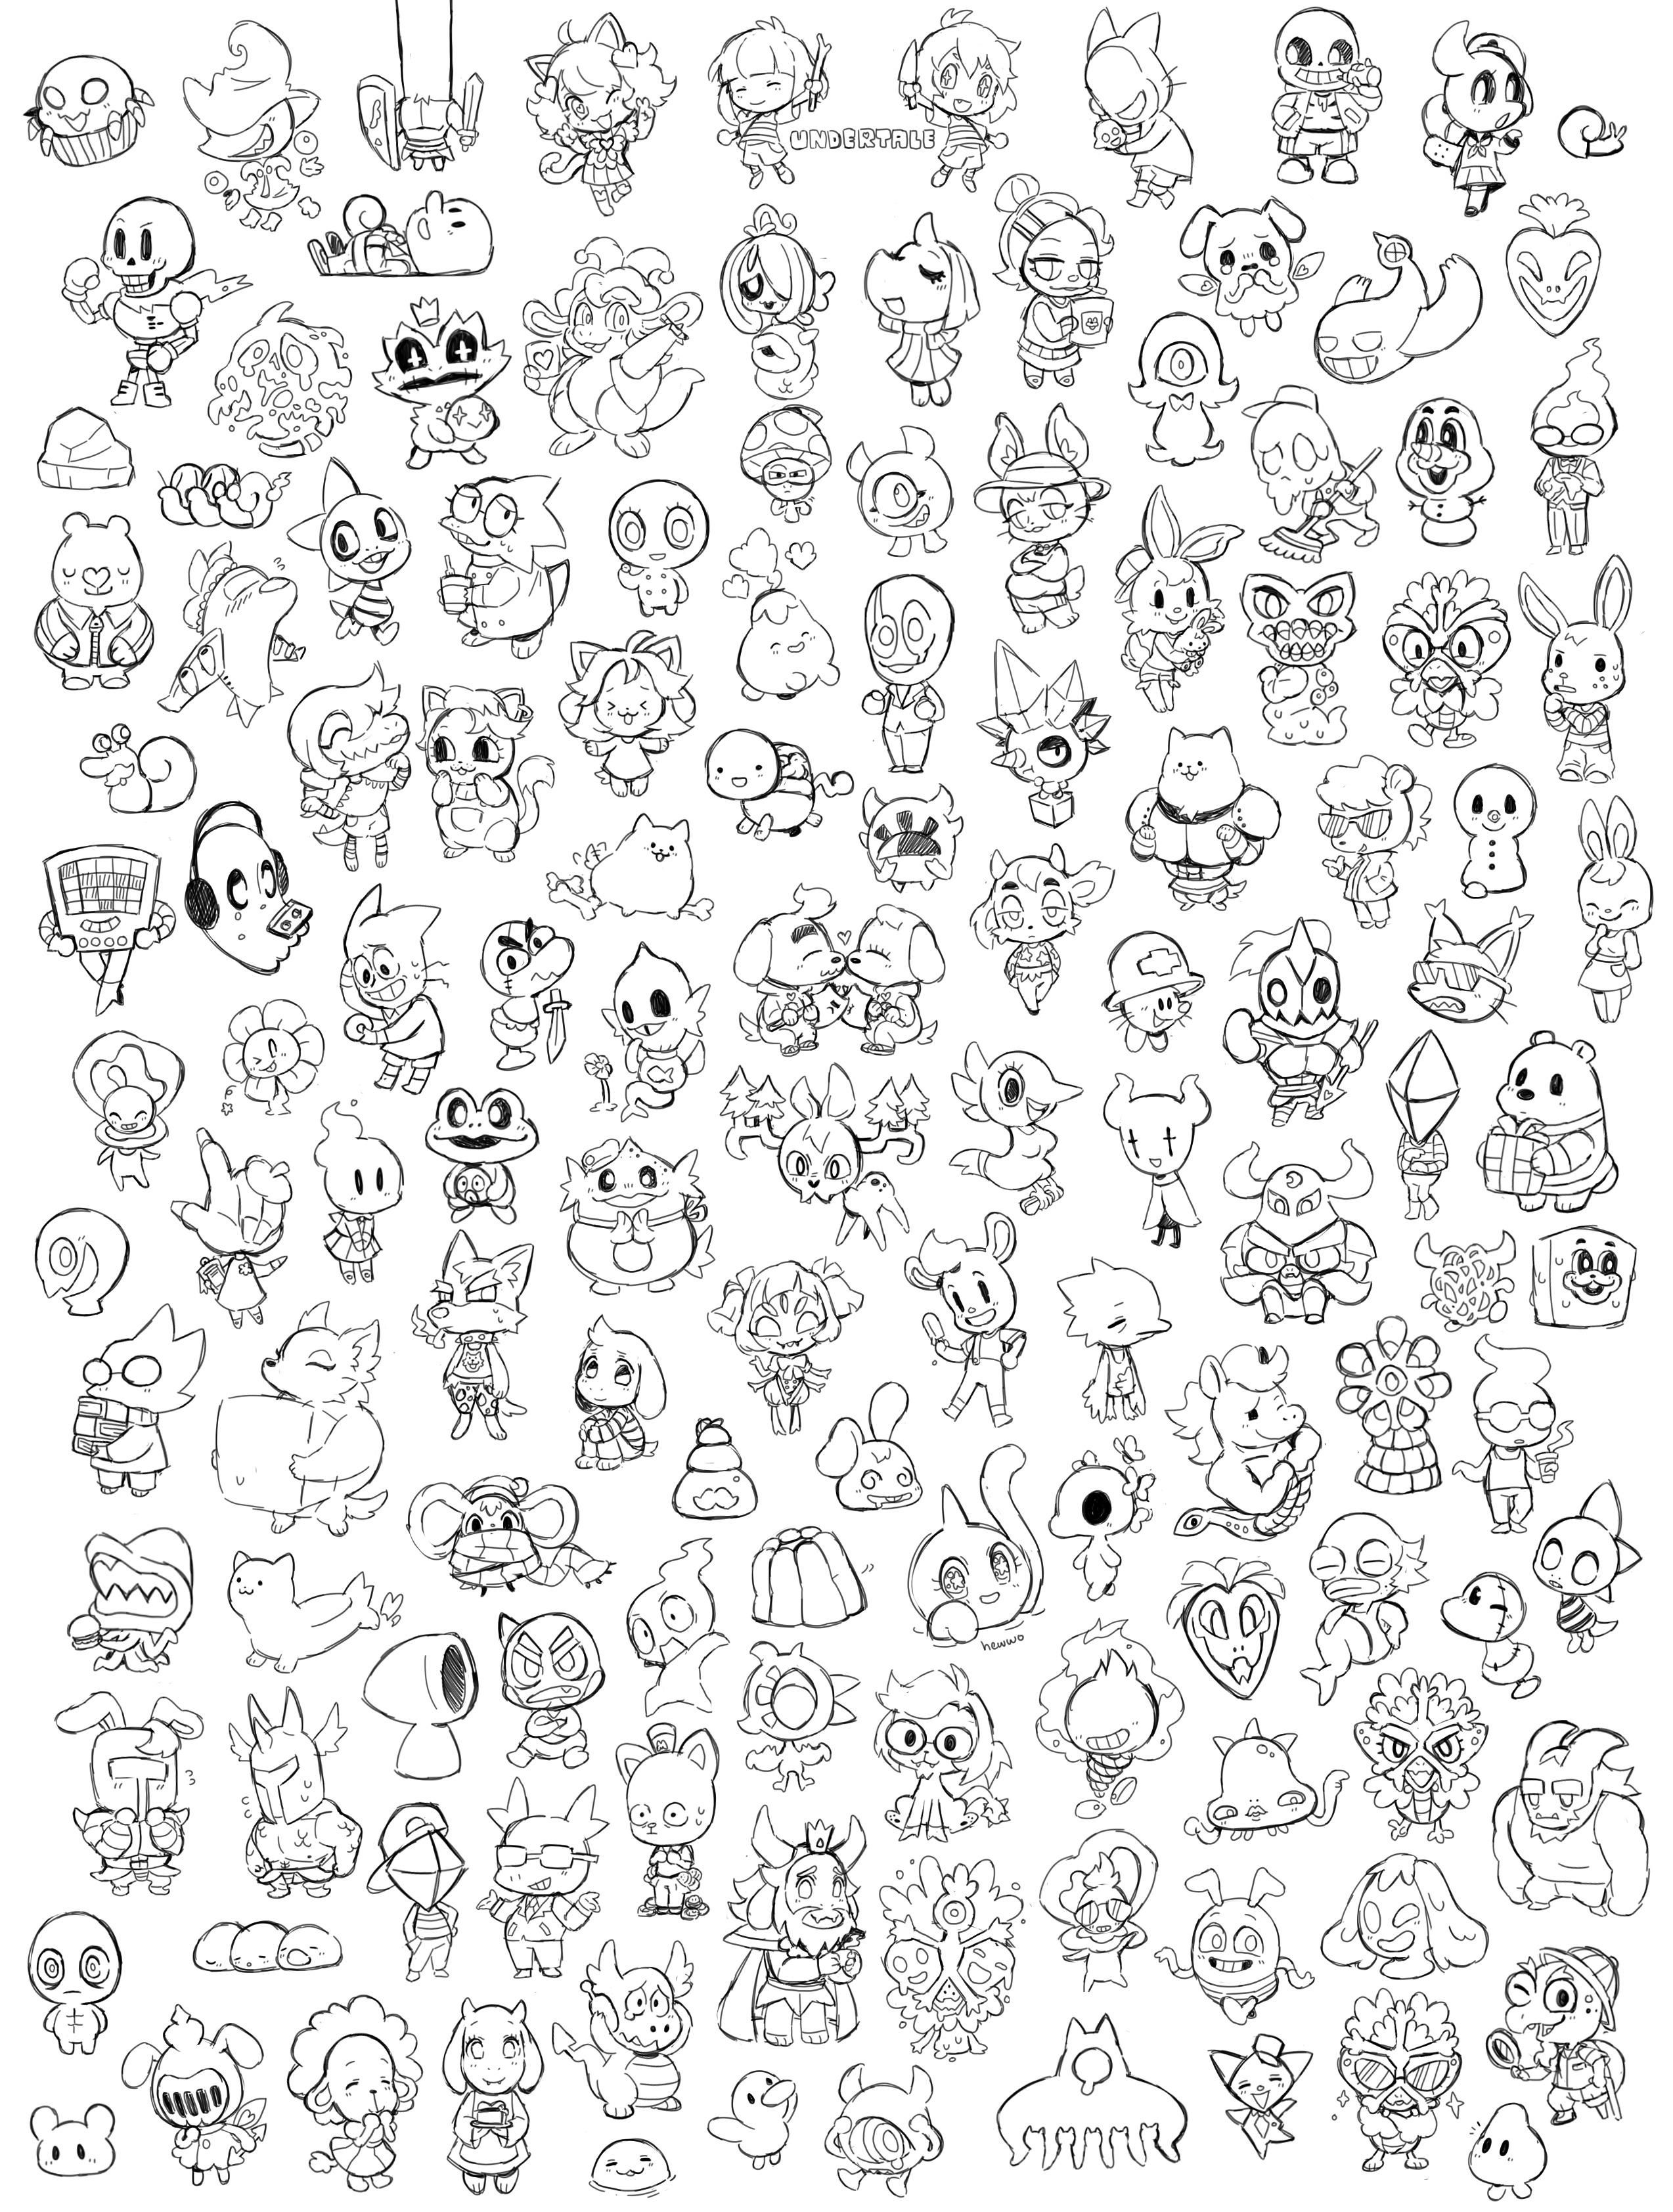 Coloring pages undertale -  Undertale 22 Coloring Pagesfun